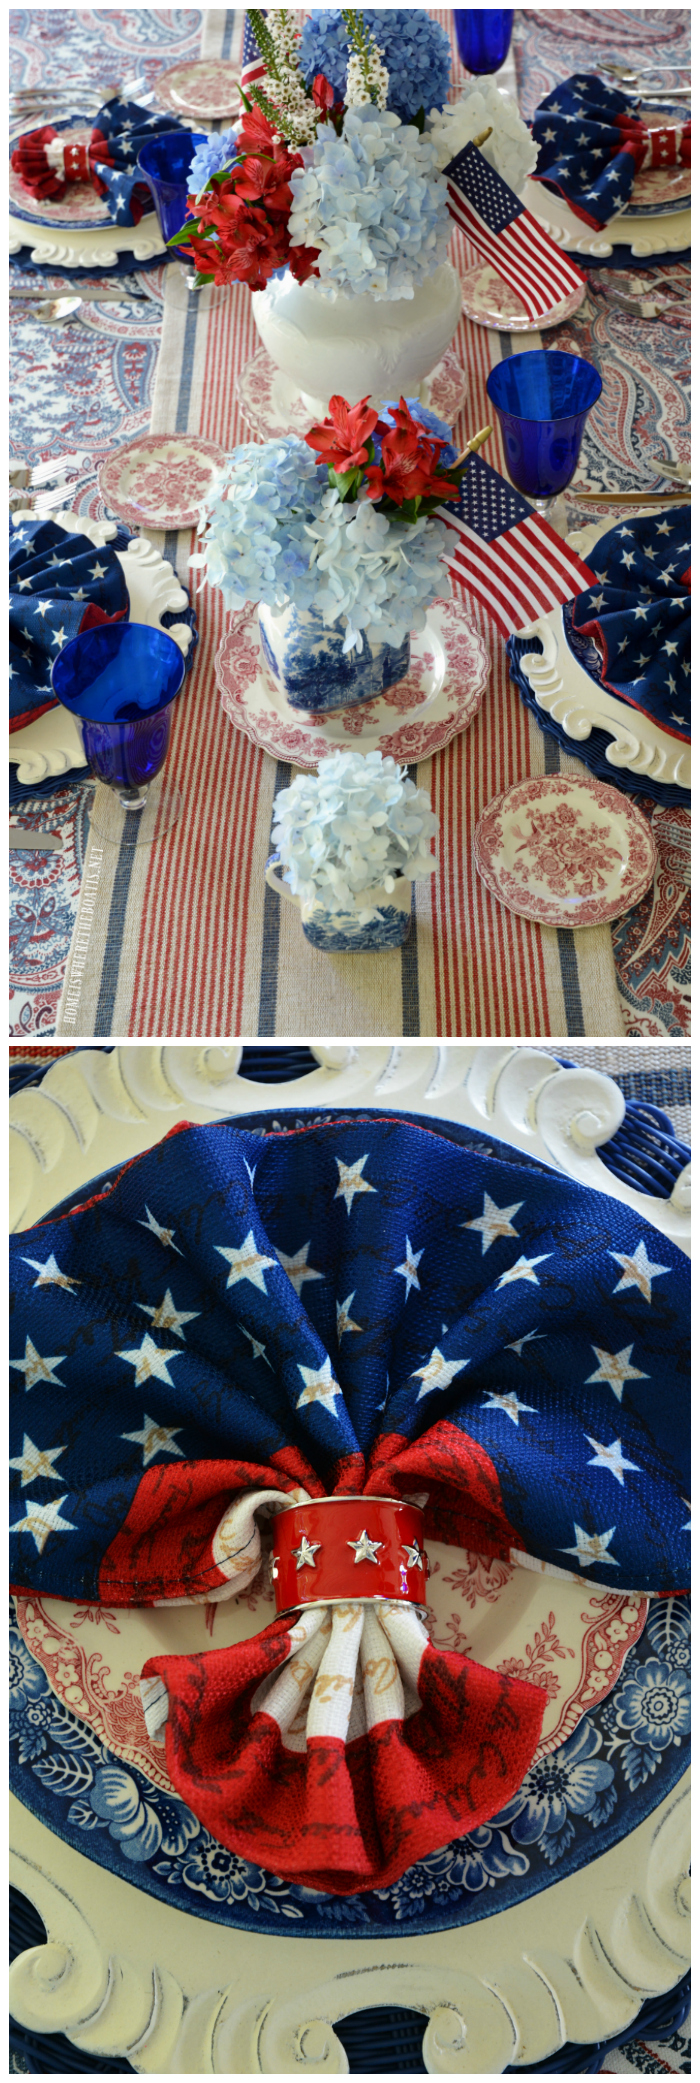 Stars and Stripes with Liberty Blue and red transferware for Independence Day on the porch